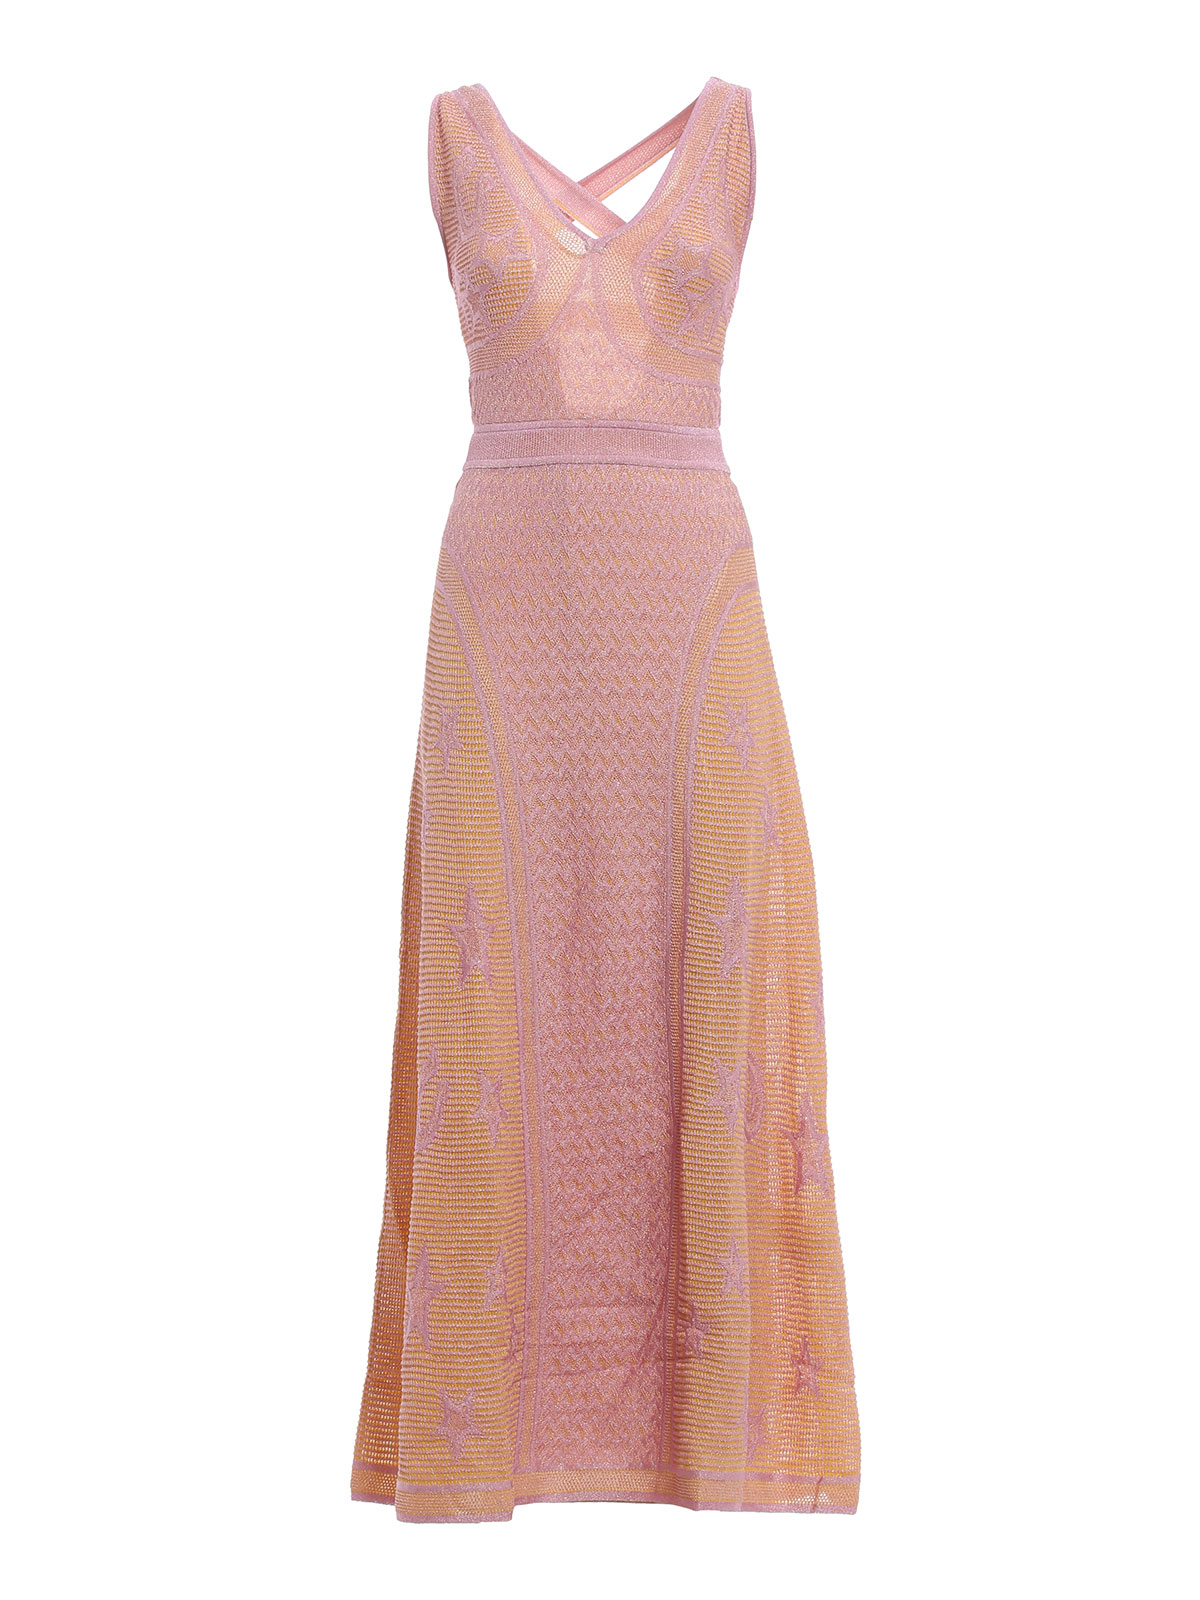 Cage back maxi dress by M Missoni - evening dresses | Shop online at ...